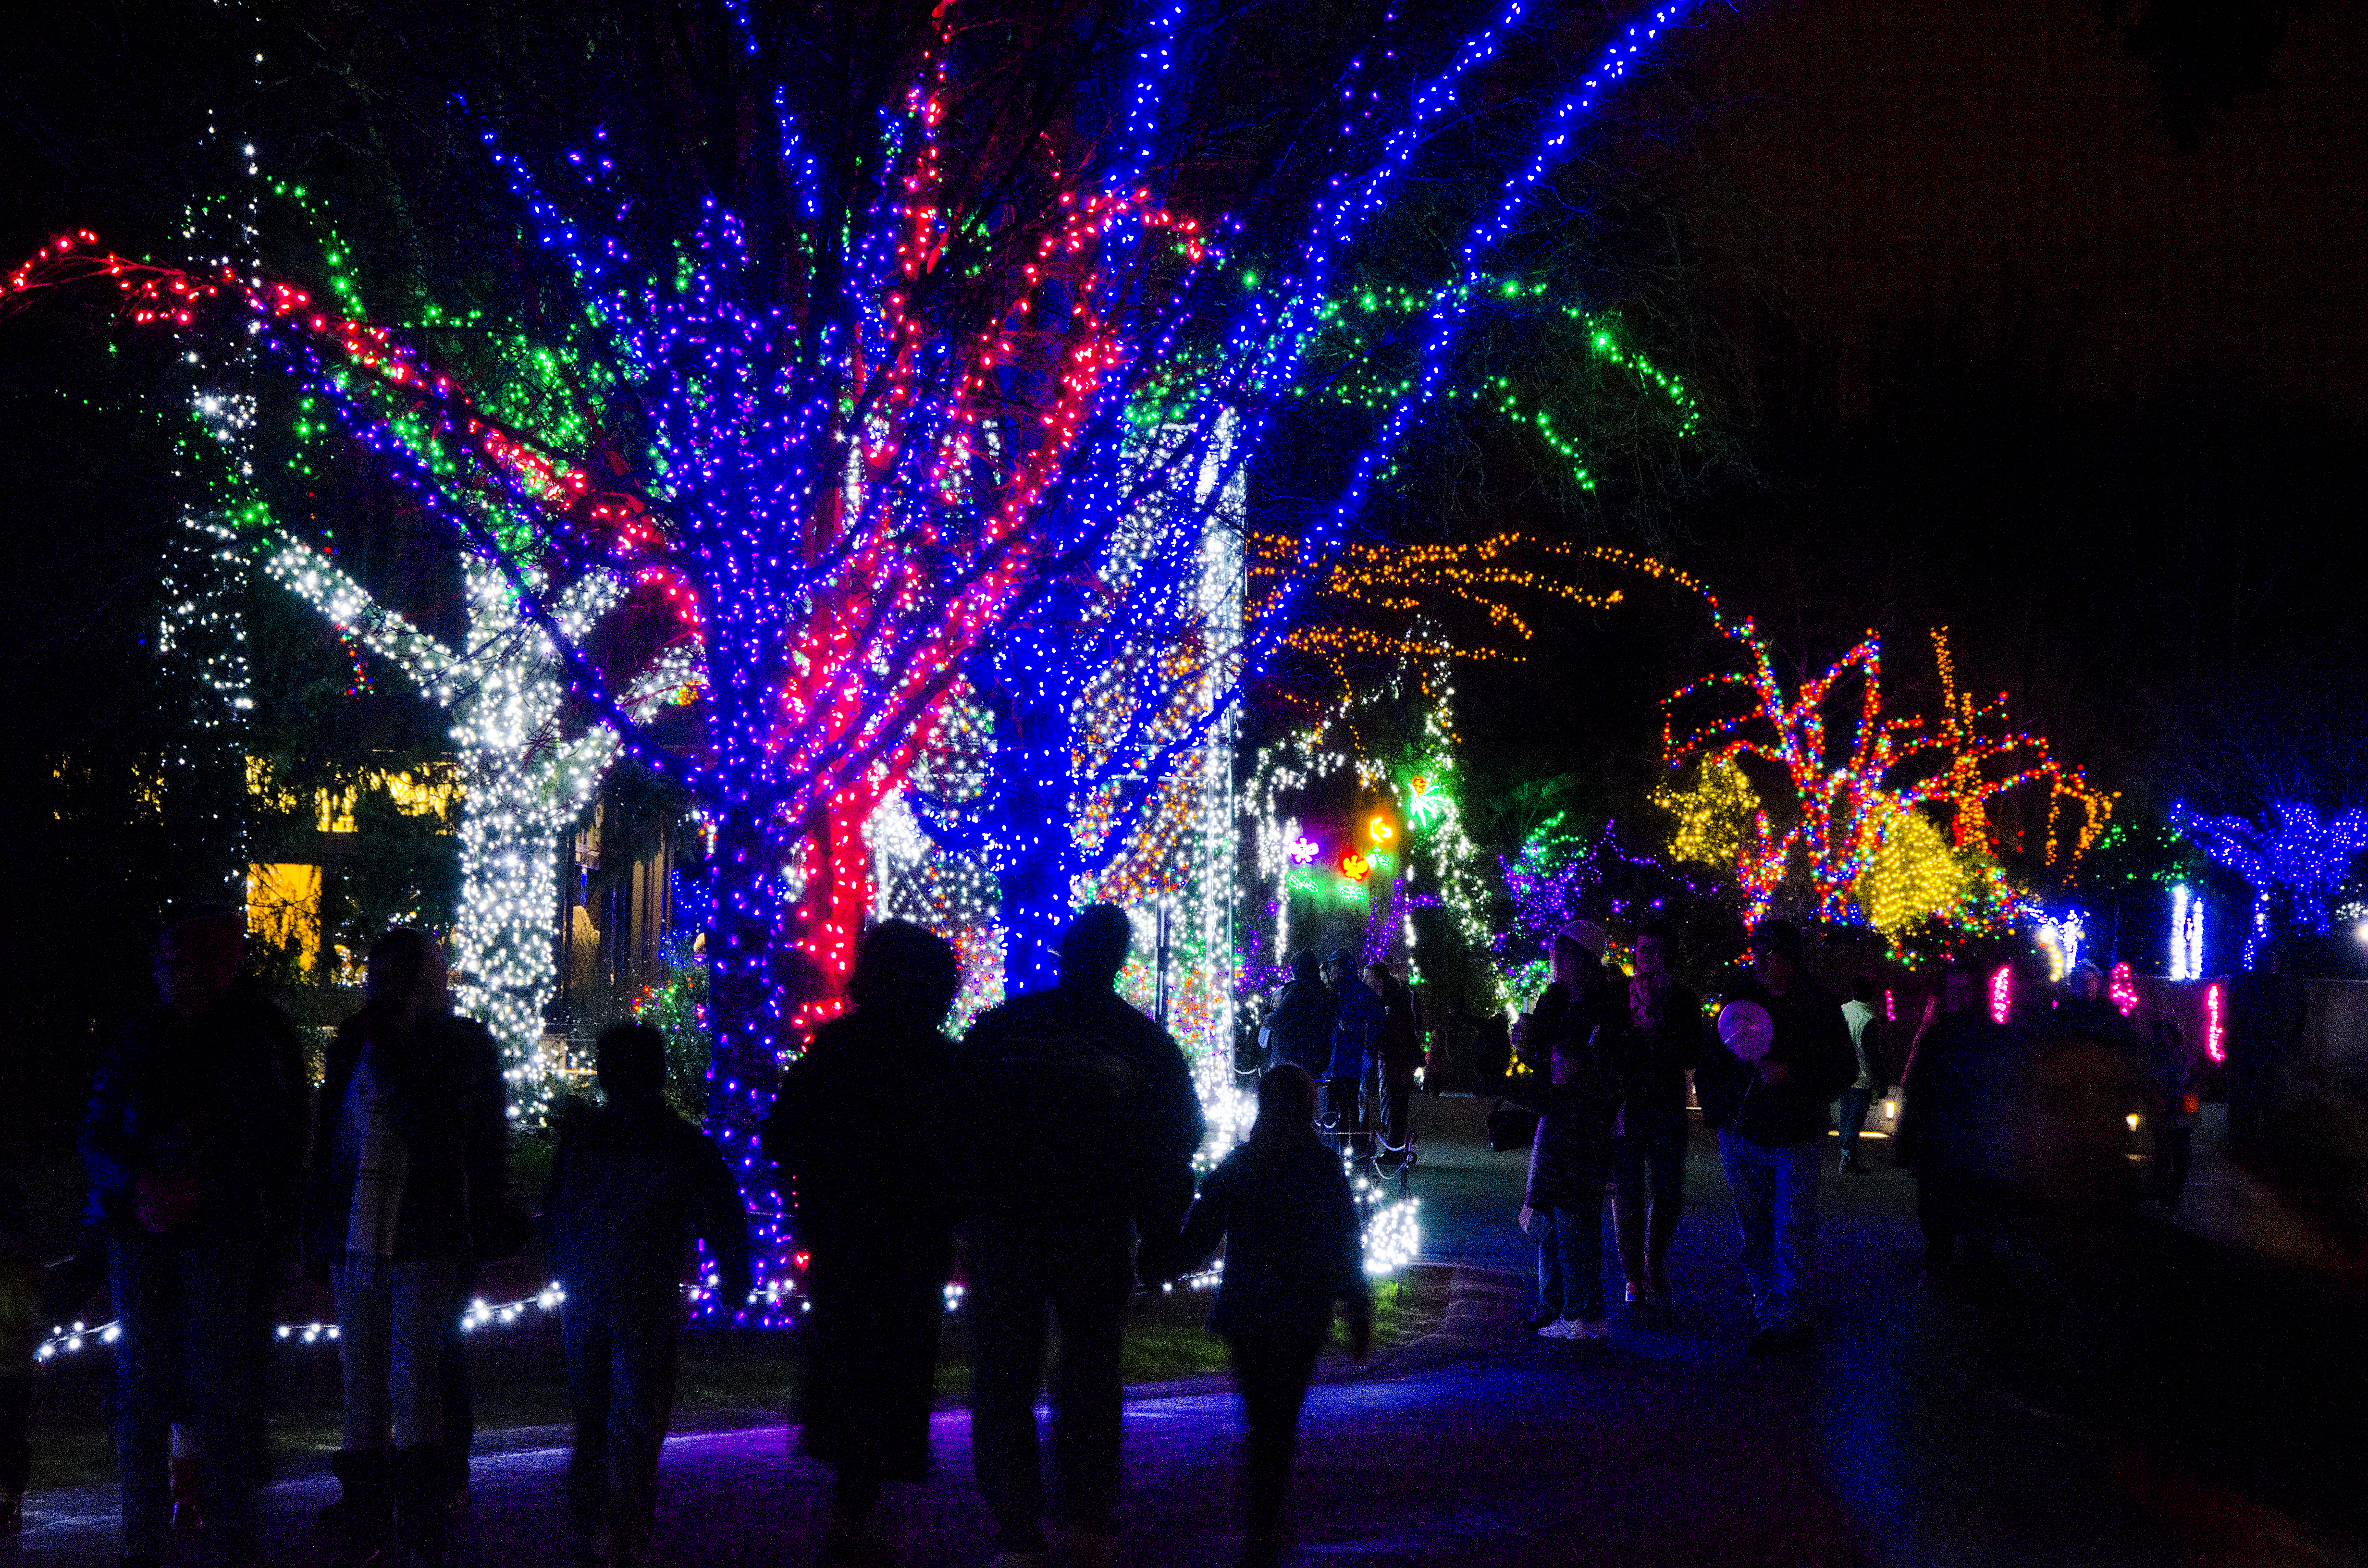 10 Seattle Area Holiday Light Displays To Visit This Season  - Christmas Lights Display Ideas